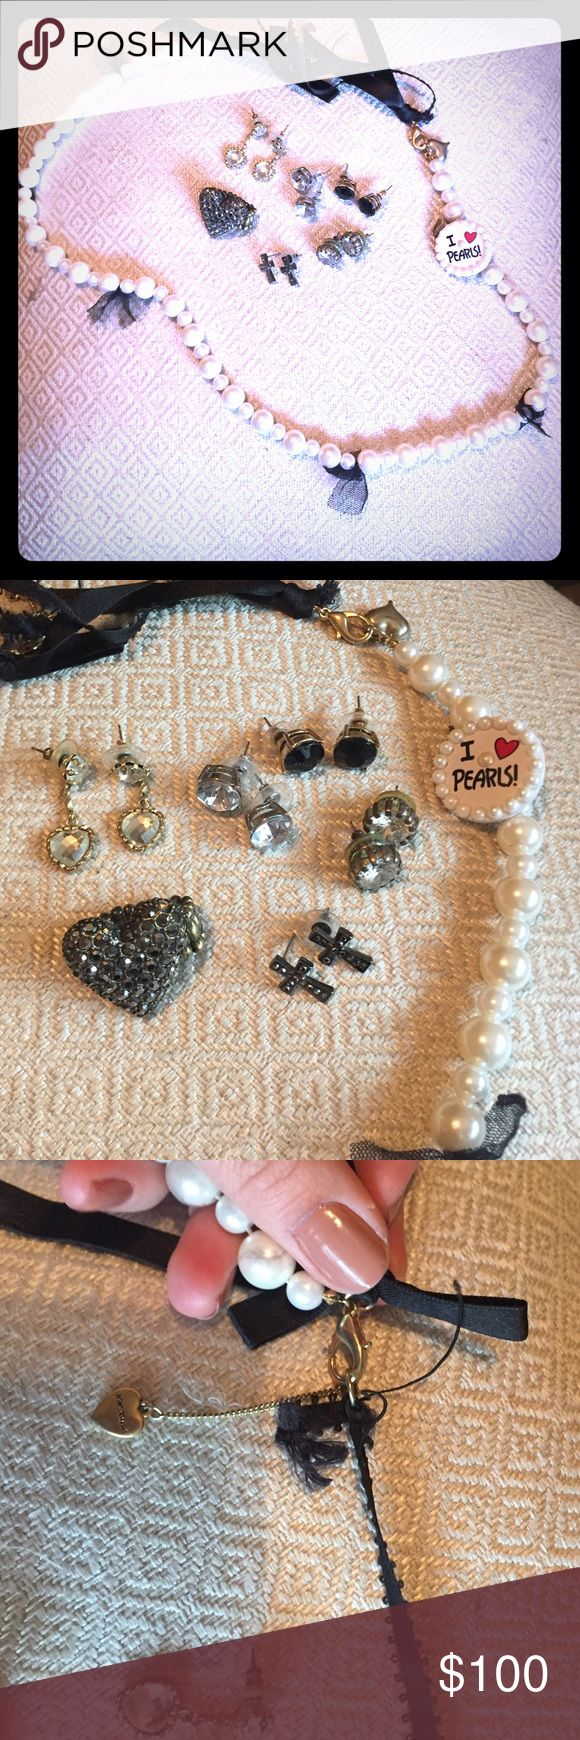 GIANT LOT OF BETSEY JOHNSON JEWLERY GIANT LOT OF ALL AUTHENTIC BETSEY JOHNSON JEWELRY! Five lies of Earrings, one ring and one necklace. The necklace had a ribbon detail that snagged a bit but you can't even tell. You could trim the tail accordingly how you wish. I did, and it hits there nacho anyway! Really great value. Well worth over $200. Necklace 48, diamanté framed earrings 40, cross studs 25, heart drop hearings 40, set of clear and black diamond studs, 40 and ring 40. Betsey Johnson…